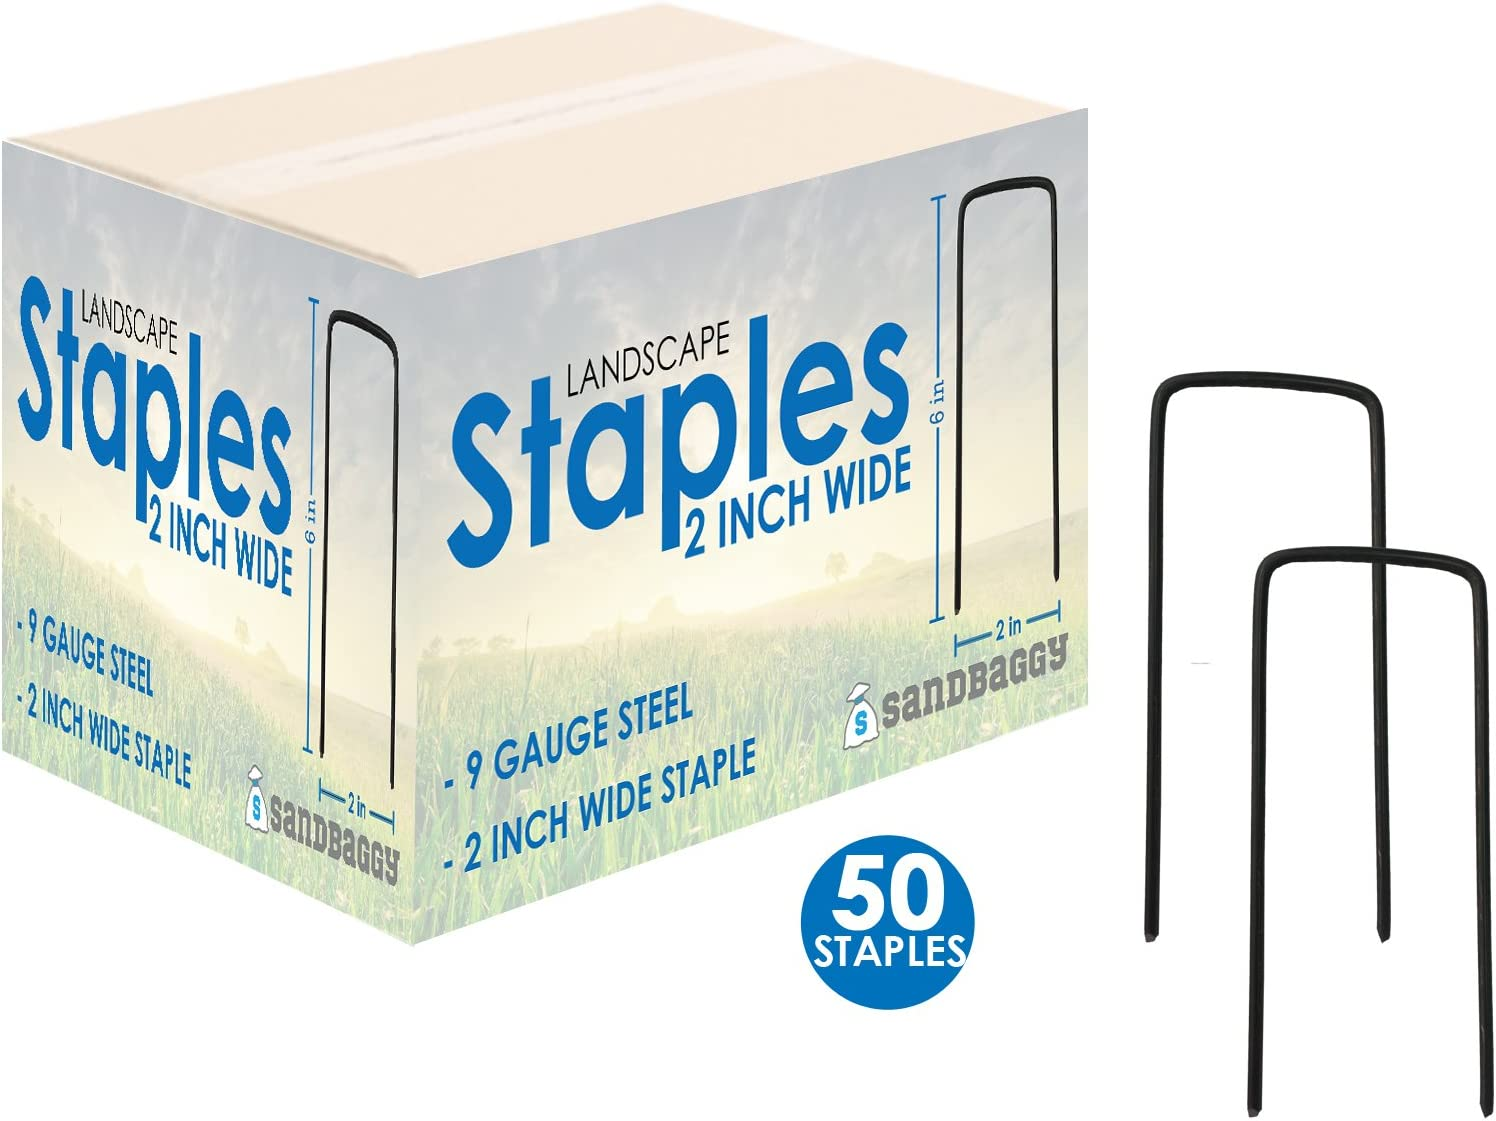 "Sandbaggy 6"" Long x 2"" Wide Extra Wide Landscape Staples~ Landscape Fabric Pins -Garden Staples Heavy Duty - Ground Cover Staples - Fence Anchors - Lawn Nails - Garden Stakes (50 Staples)"